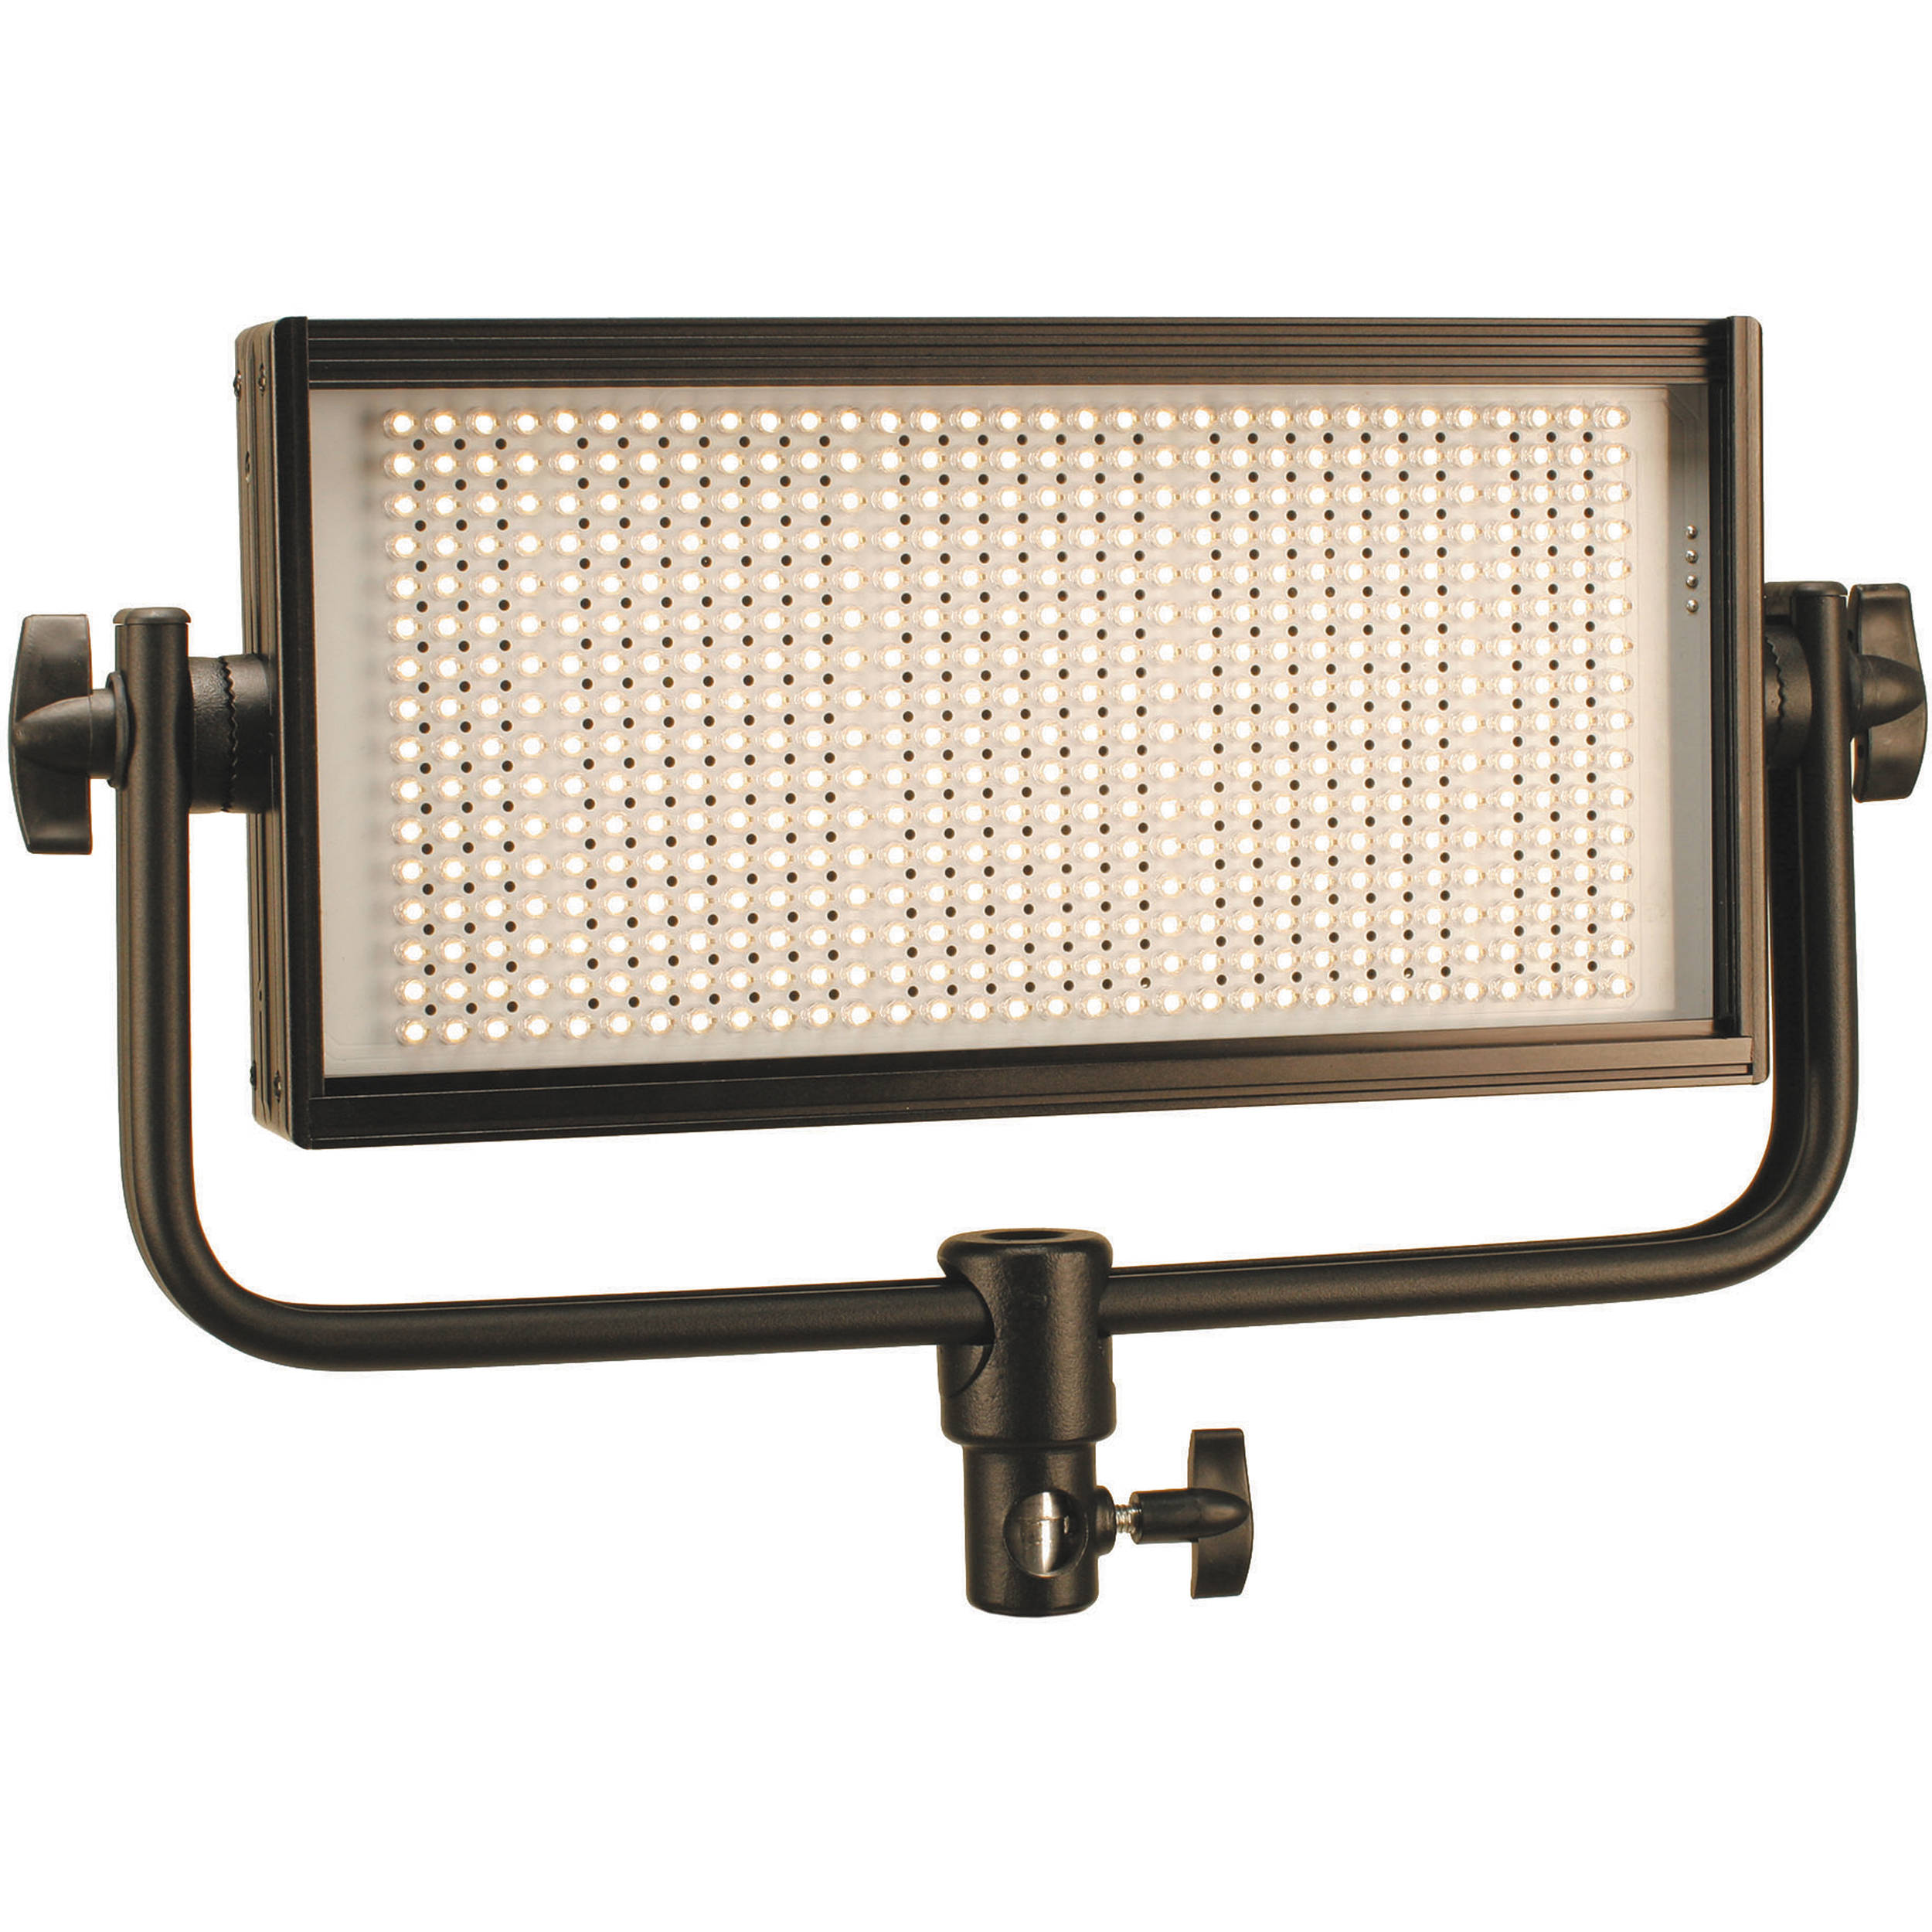 Cool lux cl500tfx tungsten pro studio led flood light 950215 bh cool lux cl500tfx tungsten pro studio led flood light with dmx aloadofball Choice Image